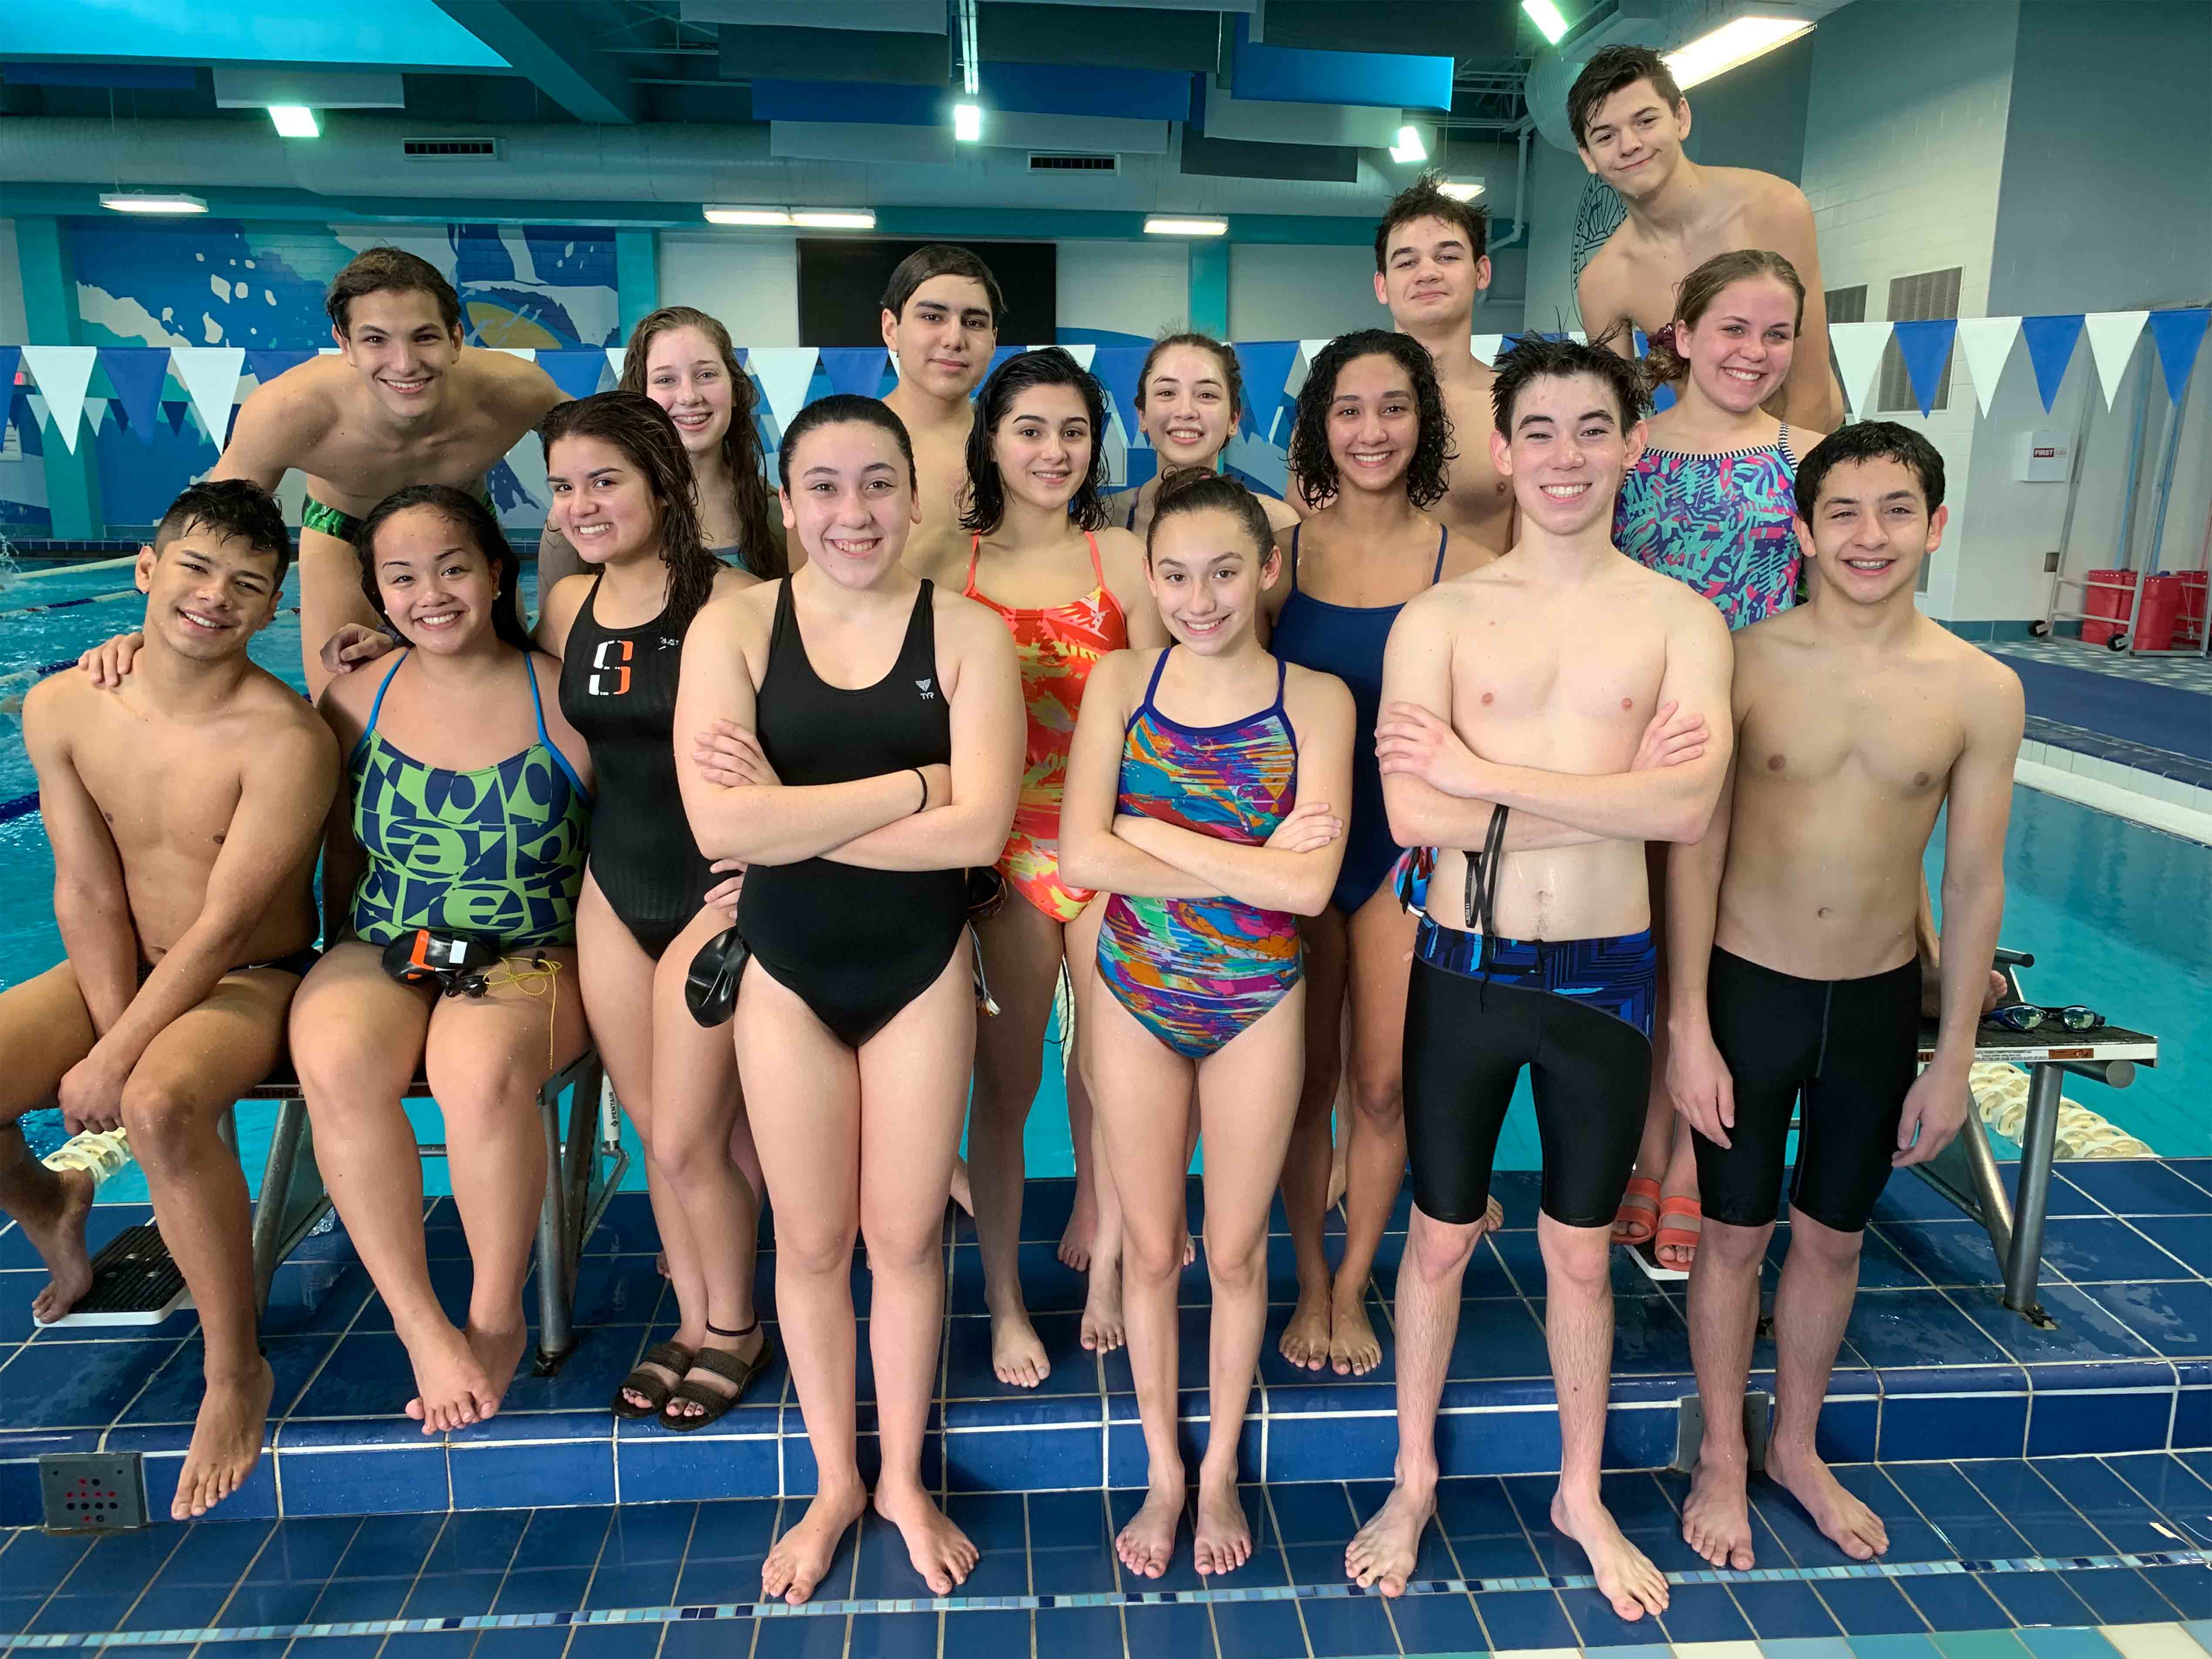 Making waves: HS swimmers advance to Regionals